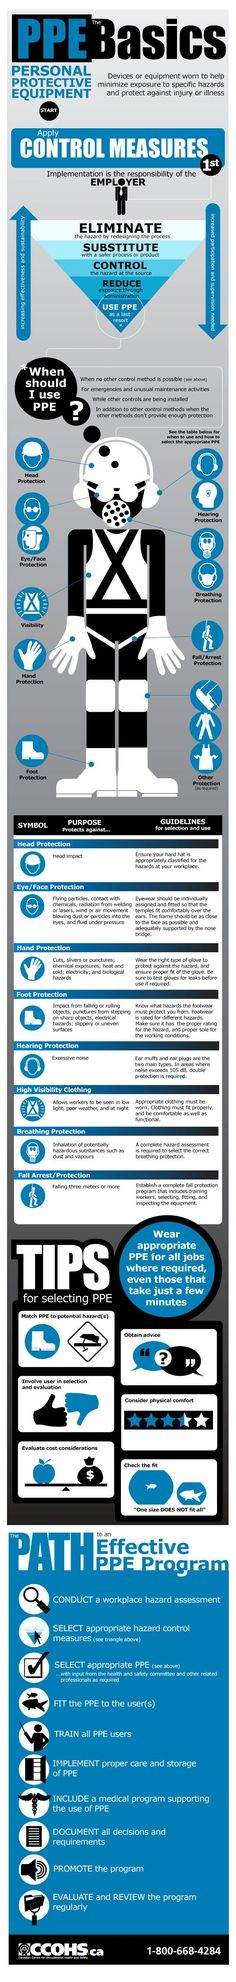 Infographic from CCOHS: PPE – the basics